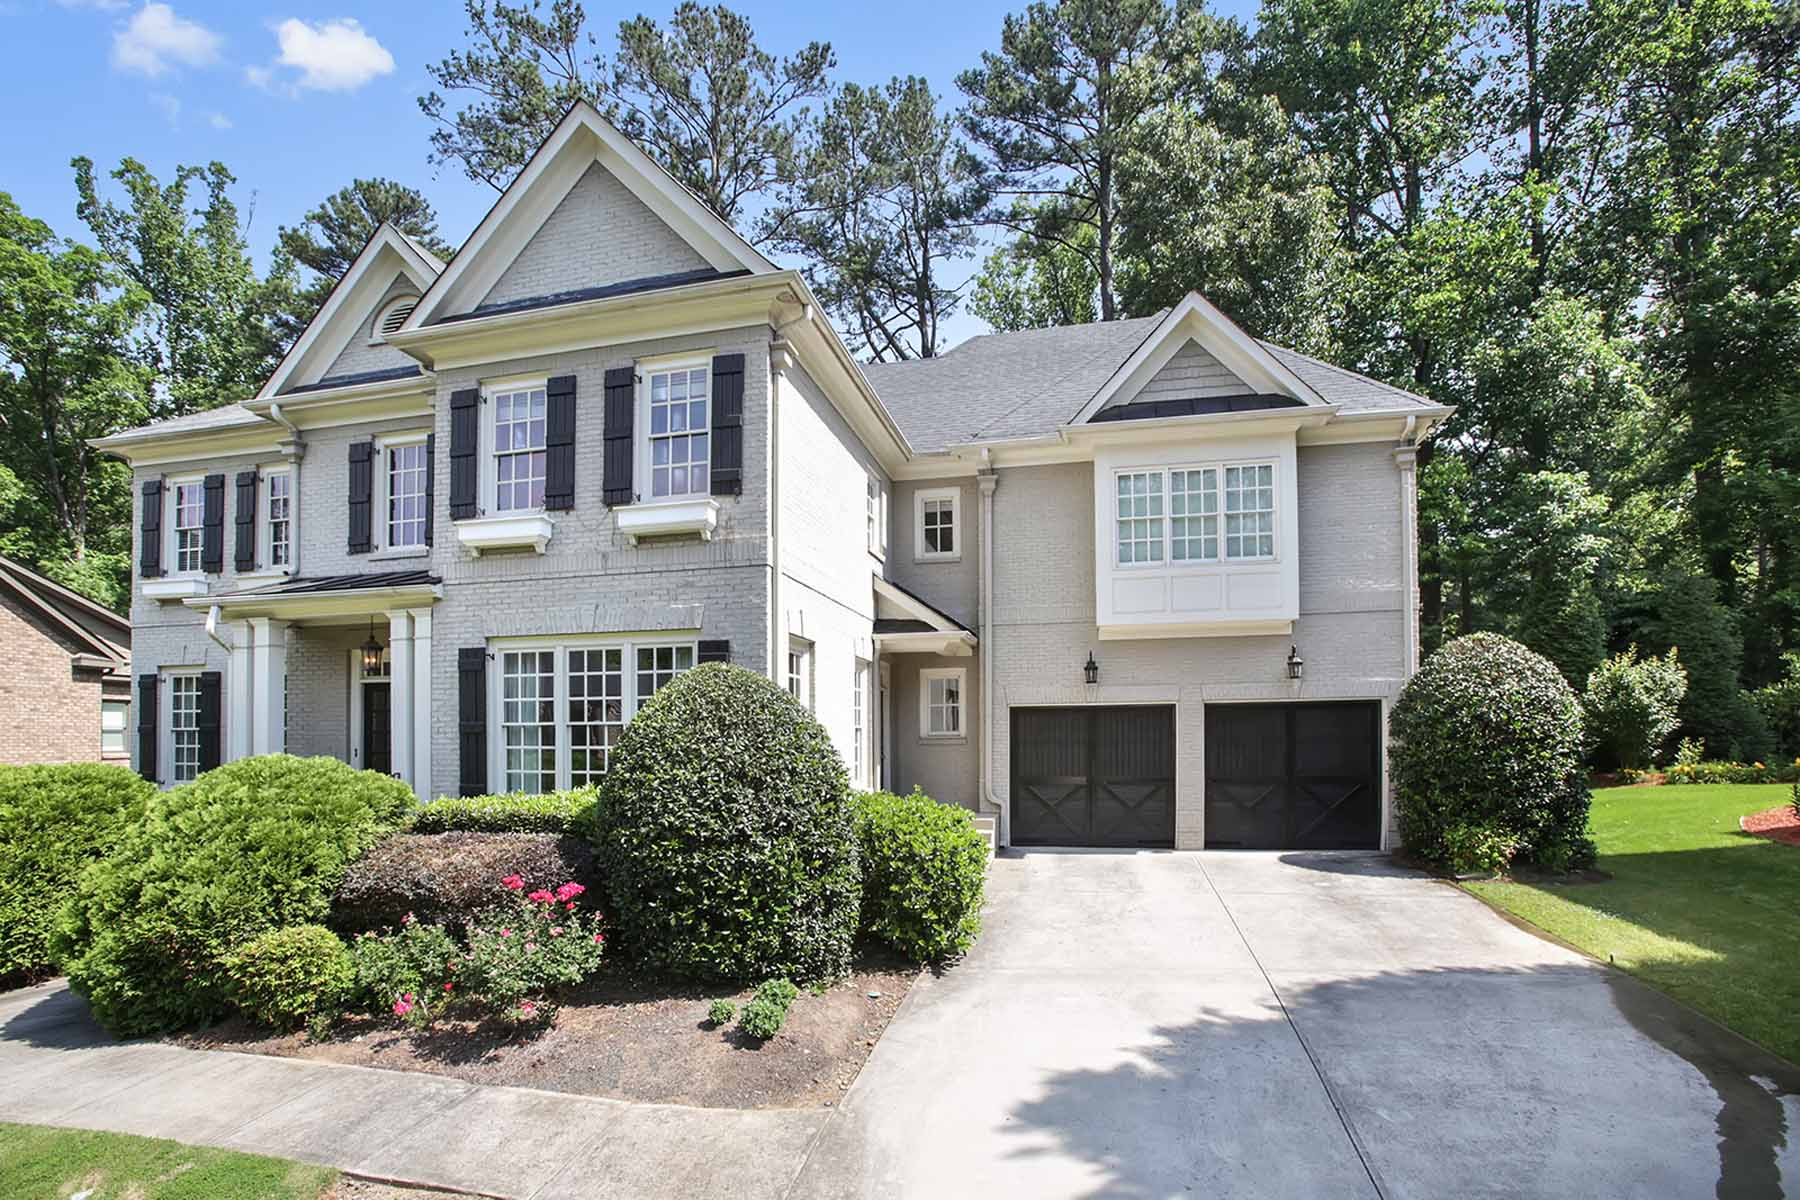 Single Family Home for Active at Excellent Executive Home 1712 Logans Knoll NE Atlanta, Georgia 30329 United States